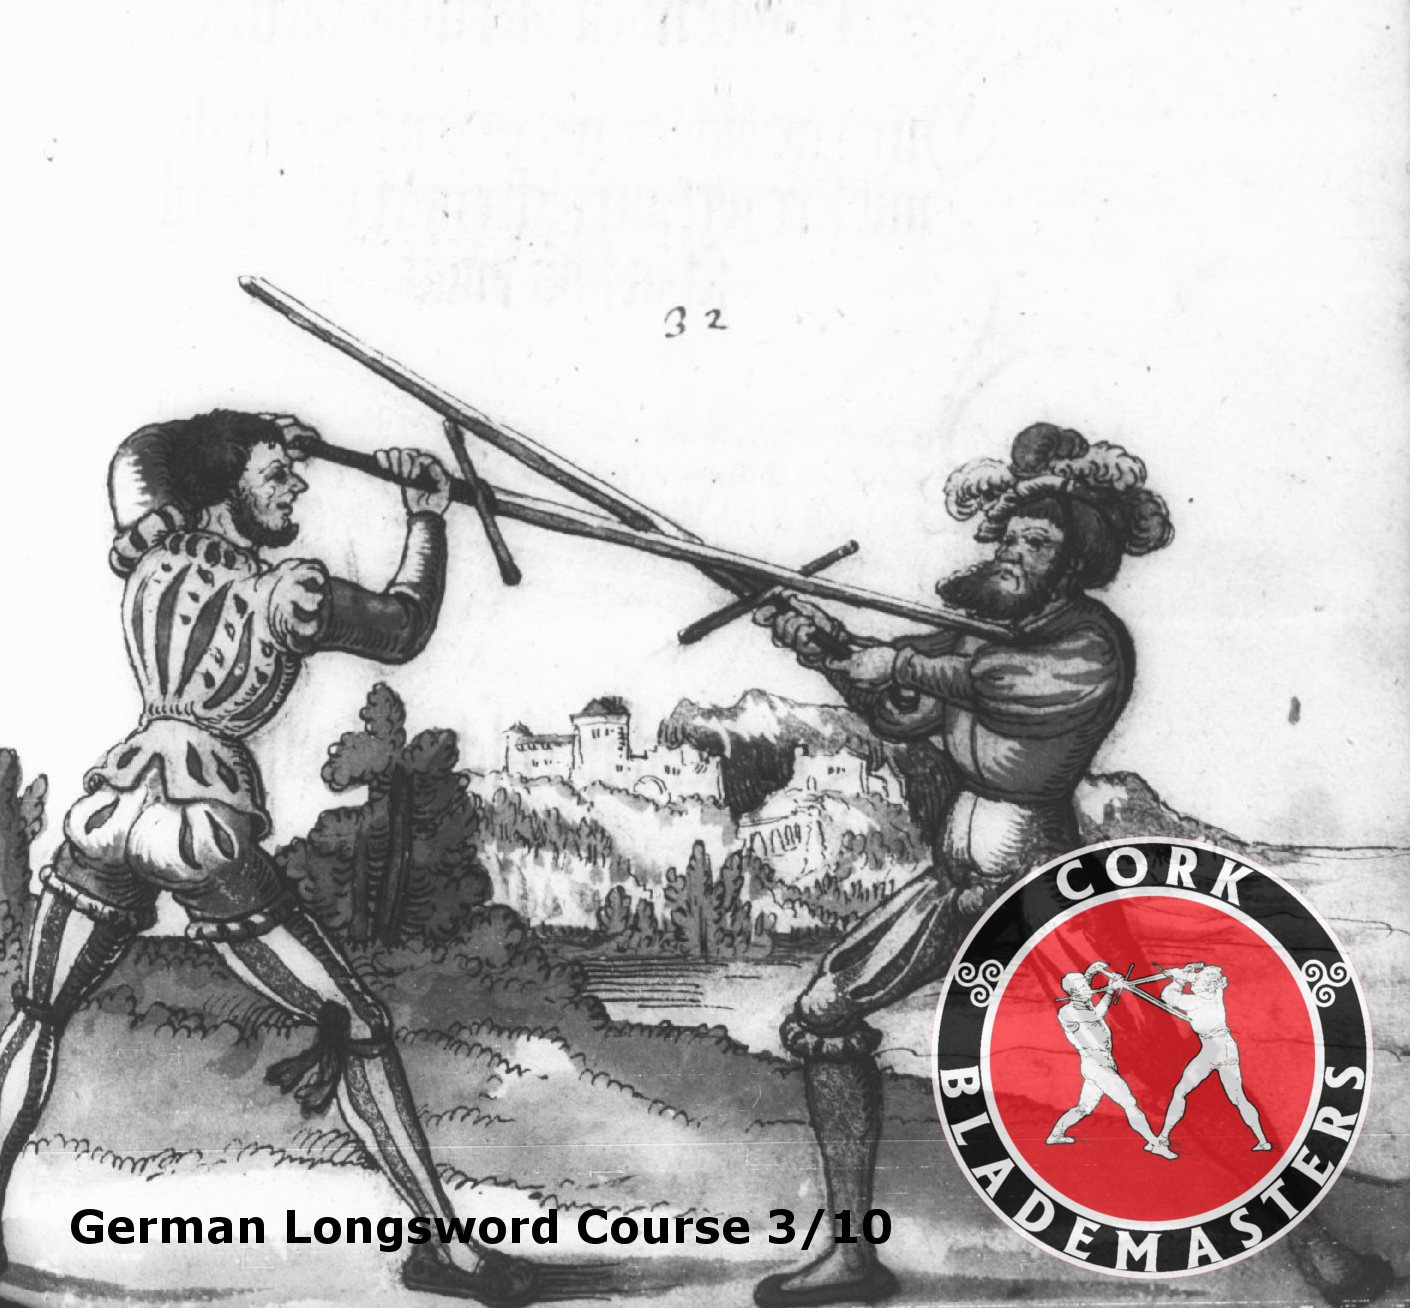 German Longsword Course 3/10 – Mon 30/04/2018